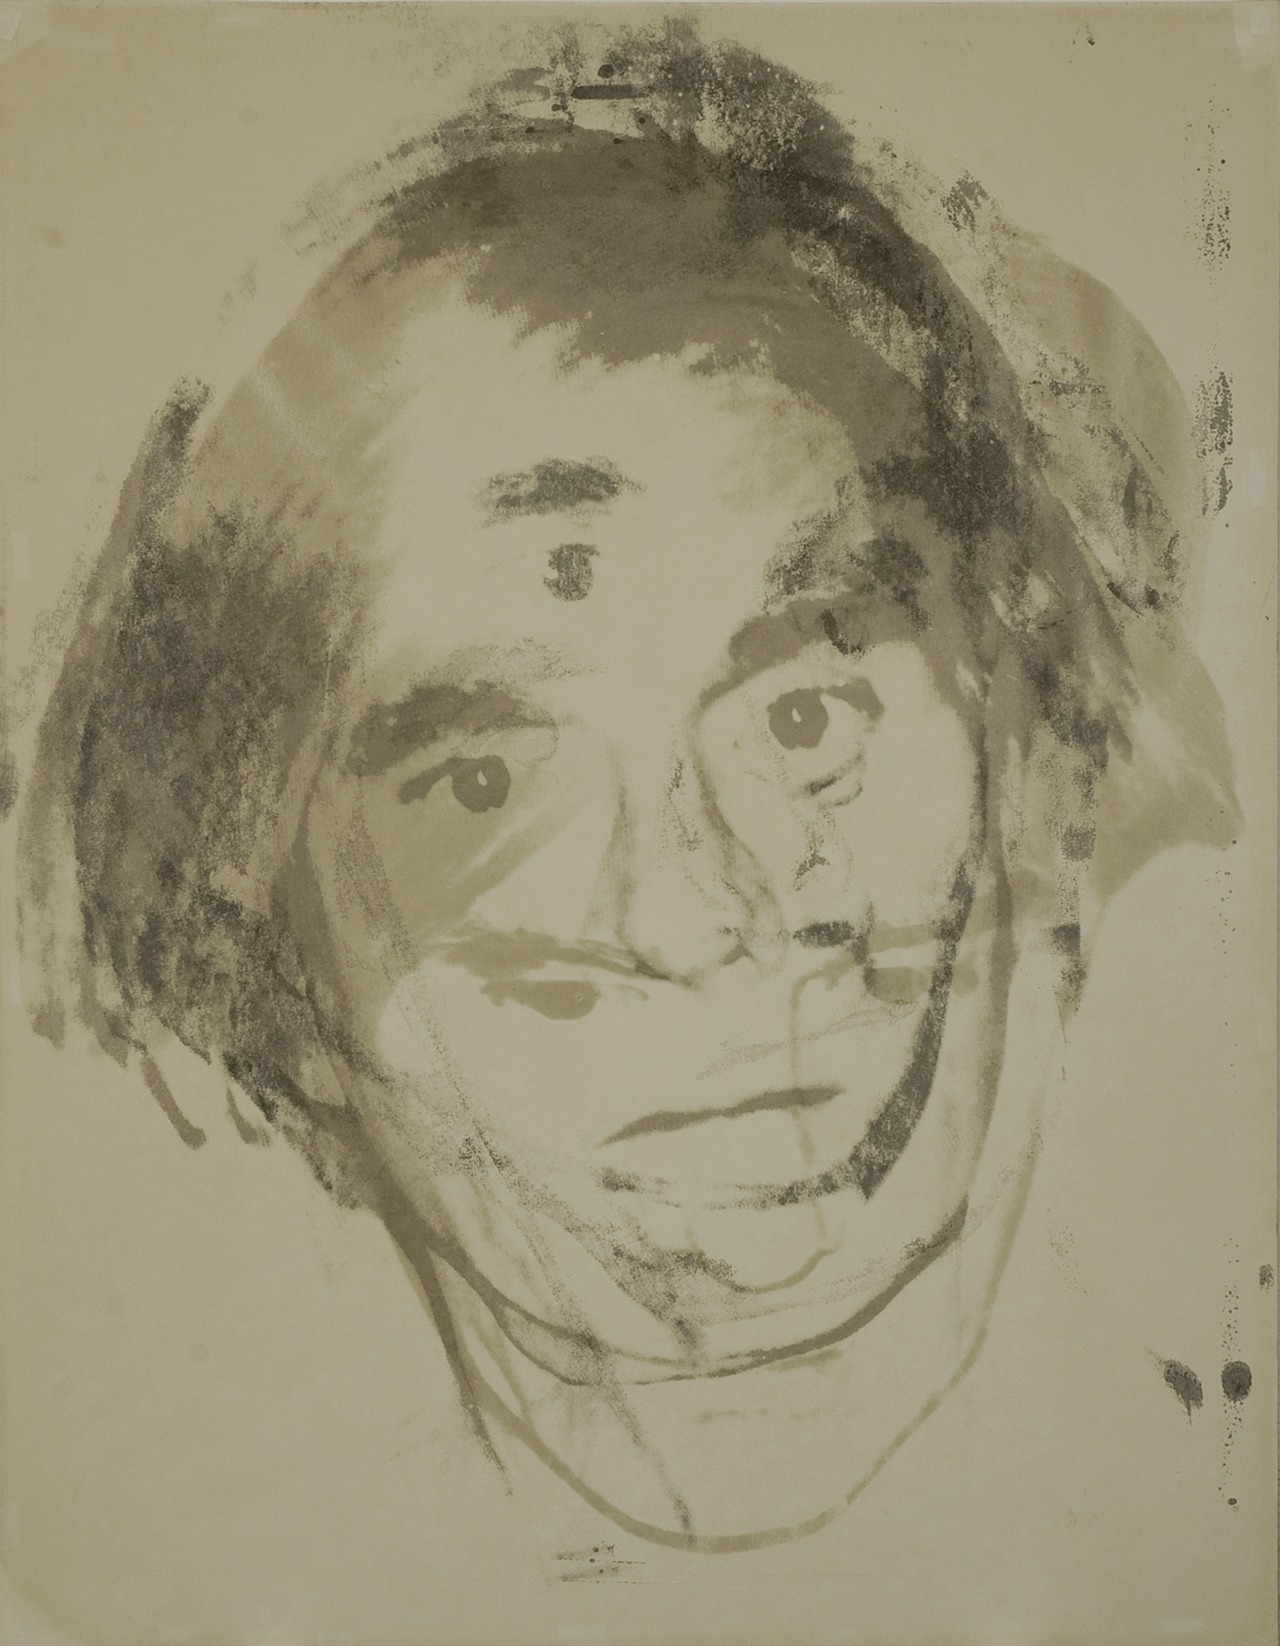 Warhol's Self-portrait Andy Warhol's Self-portrait (c.1977) is a rare and unique screenprint, only available until this Tuesday, at 10:40 a.m. (EST). This iconic work fuses elements of movement and abstraction to capture the king of Pop Art moving in slow motion.